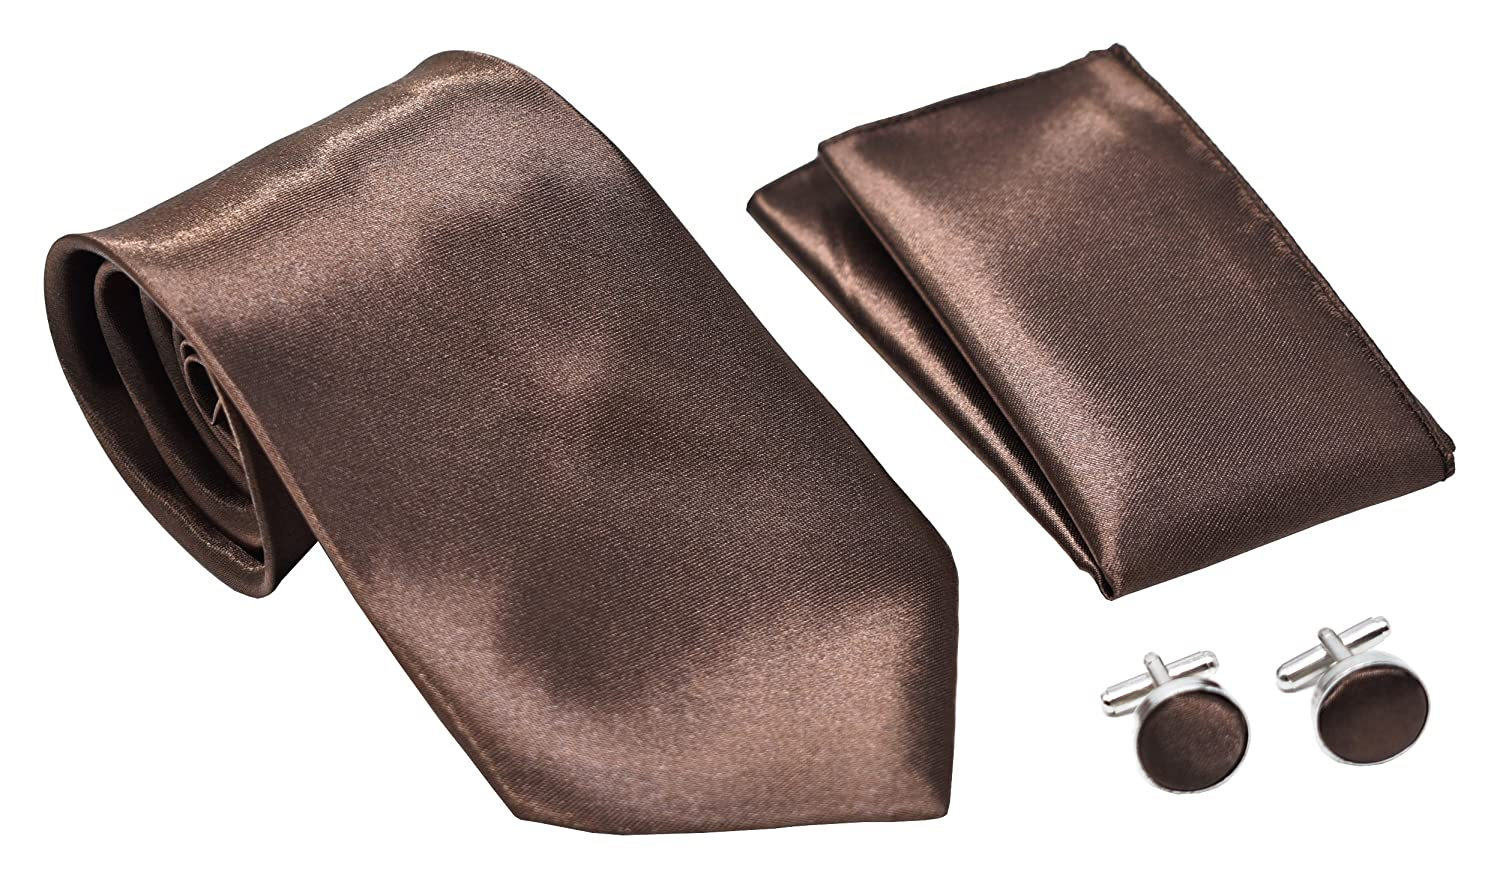 Kingsquare Solid Color Men's Tie, Pocket Square, and Cufflinks matching set TPC5150